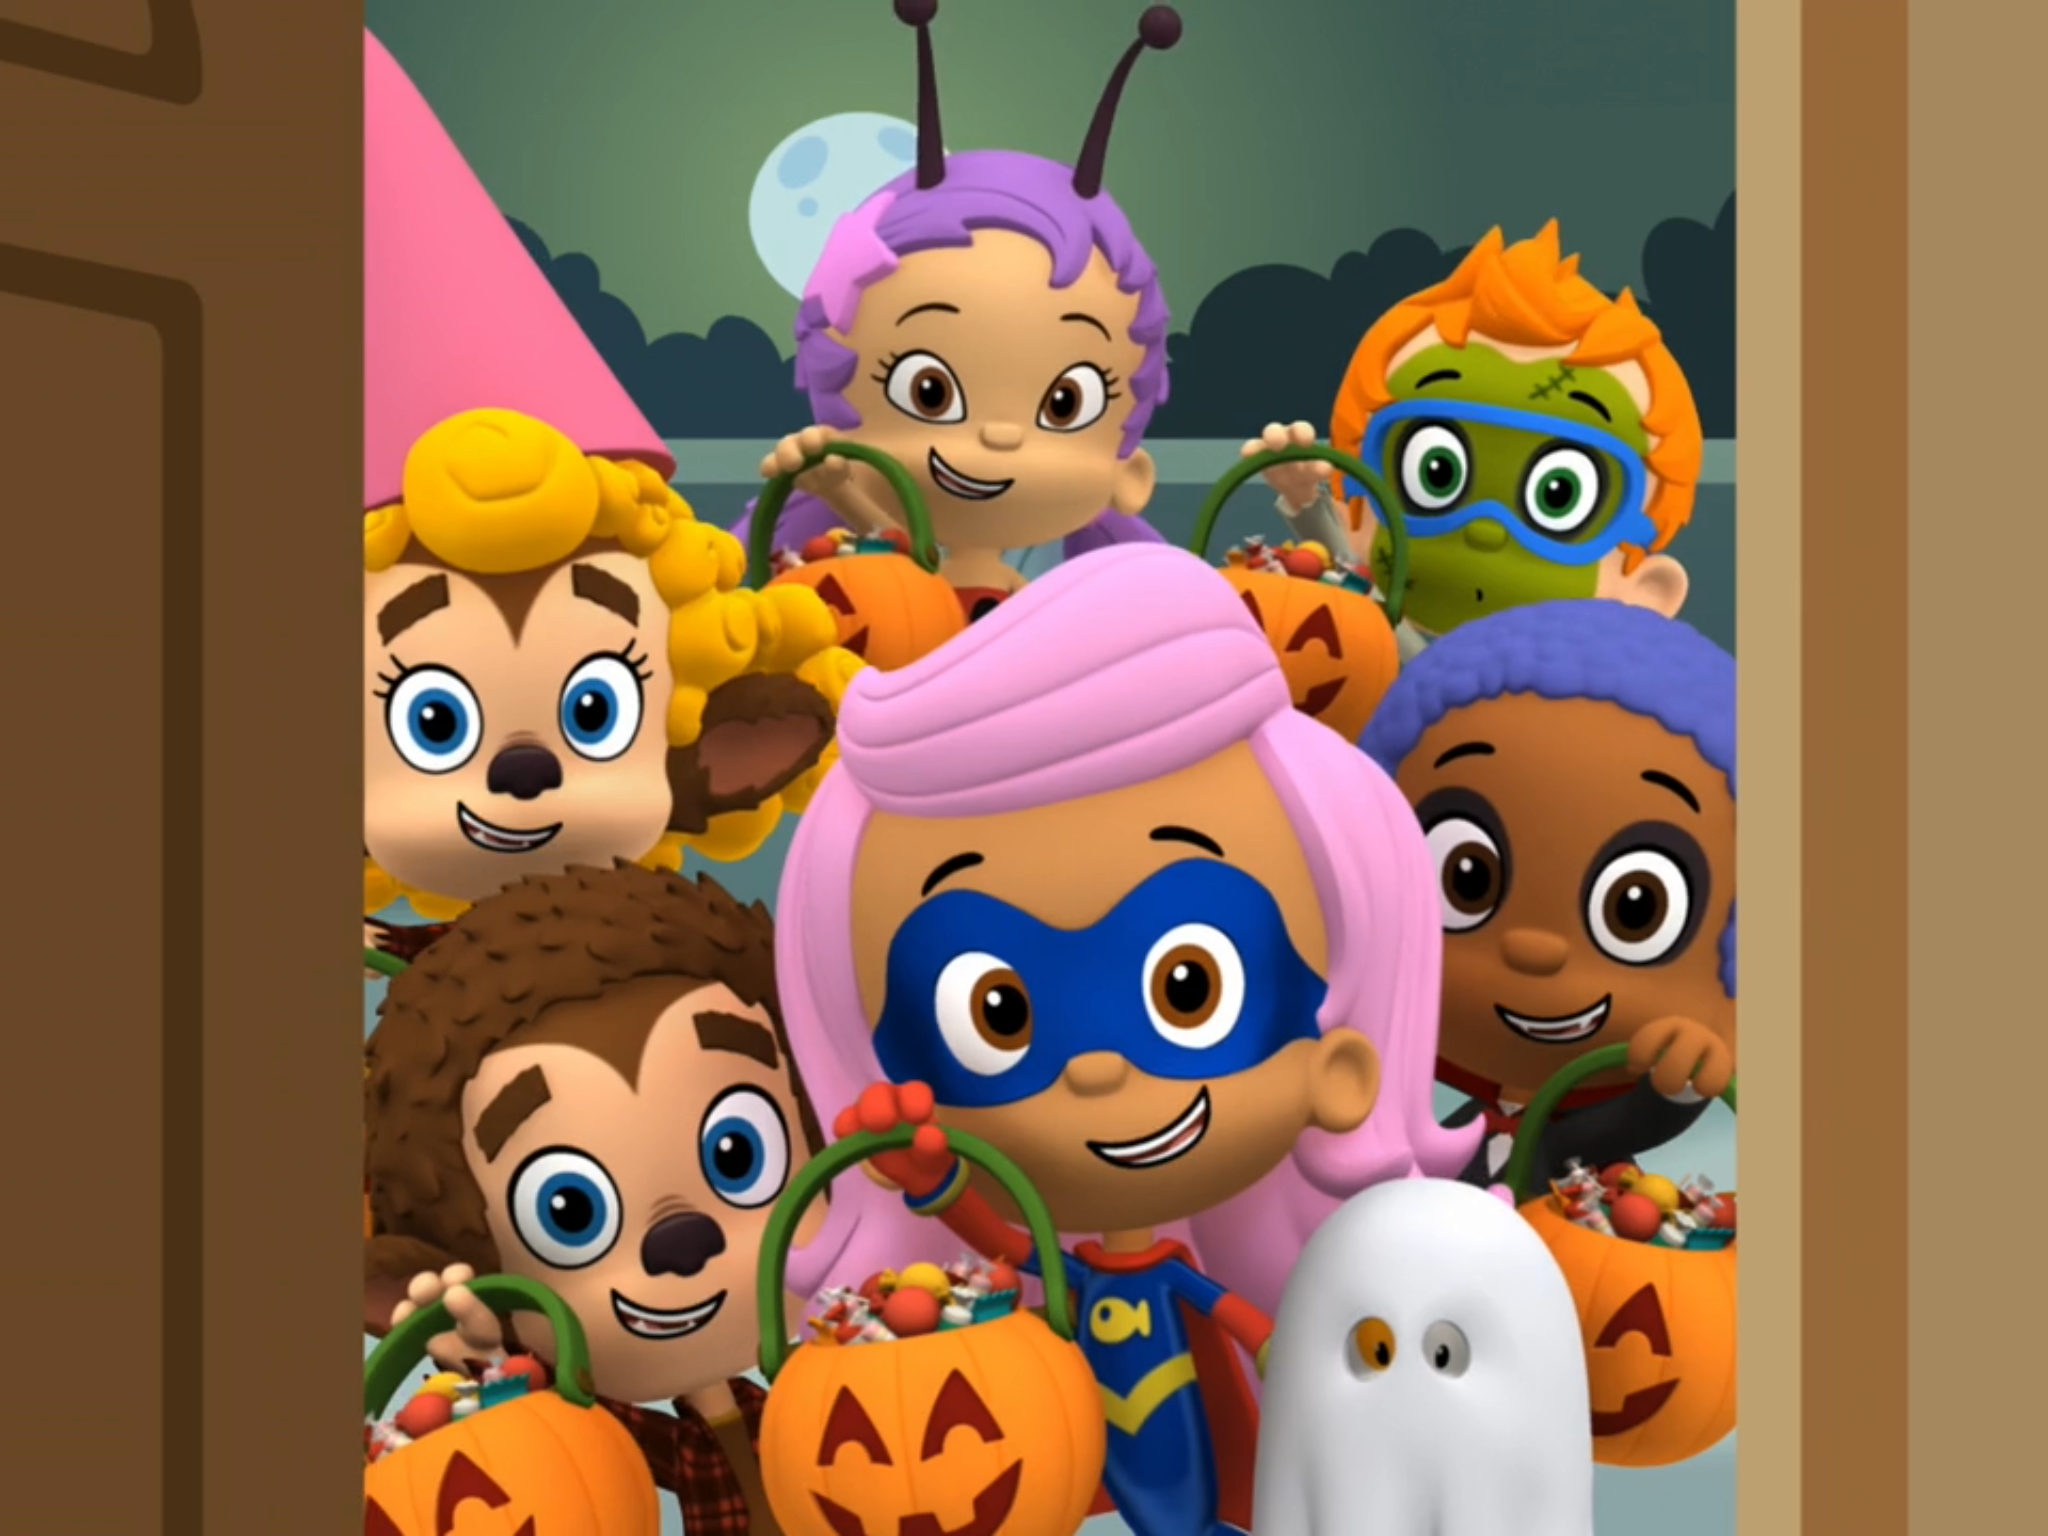 happy halloween to the bubble guppies to have a spooky fun happy